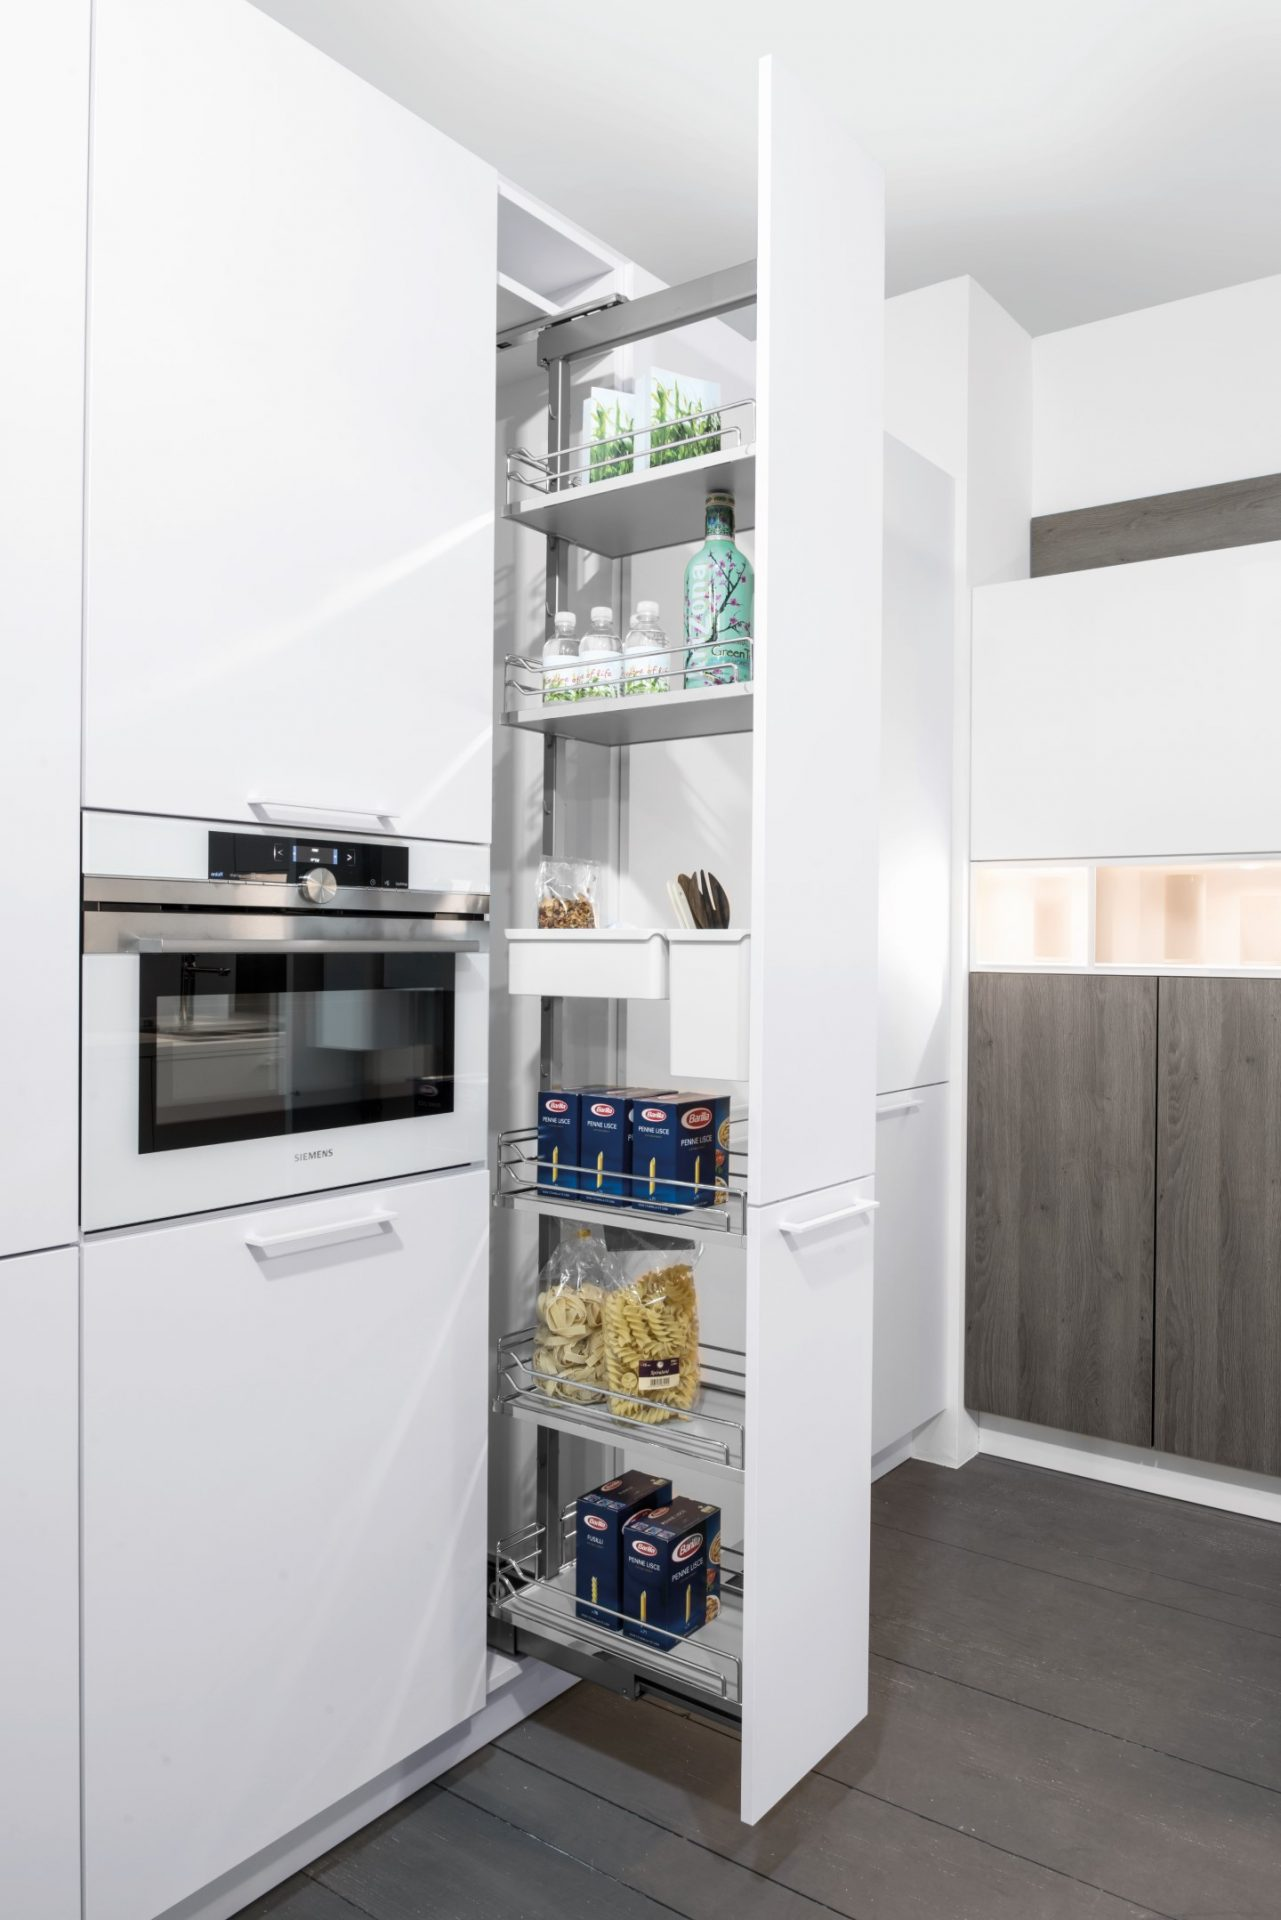 Ceiling To Floor Pull Out Kitchen Cupboard 6 Tier